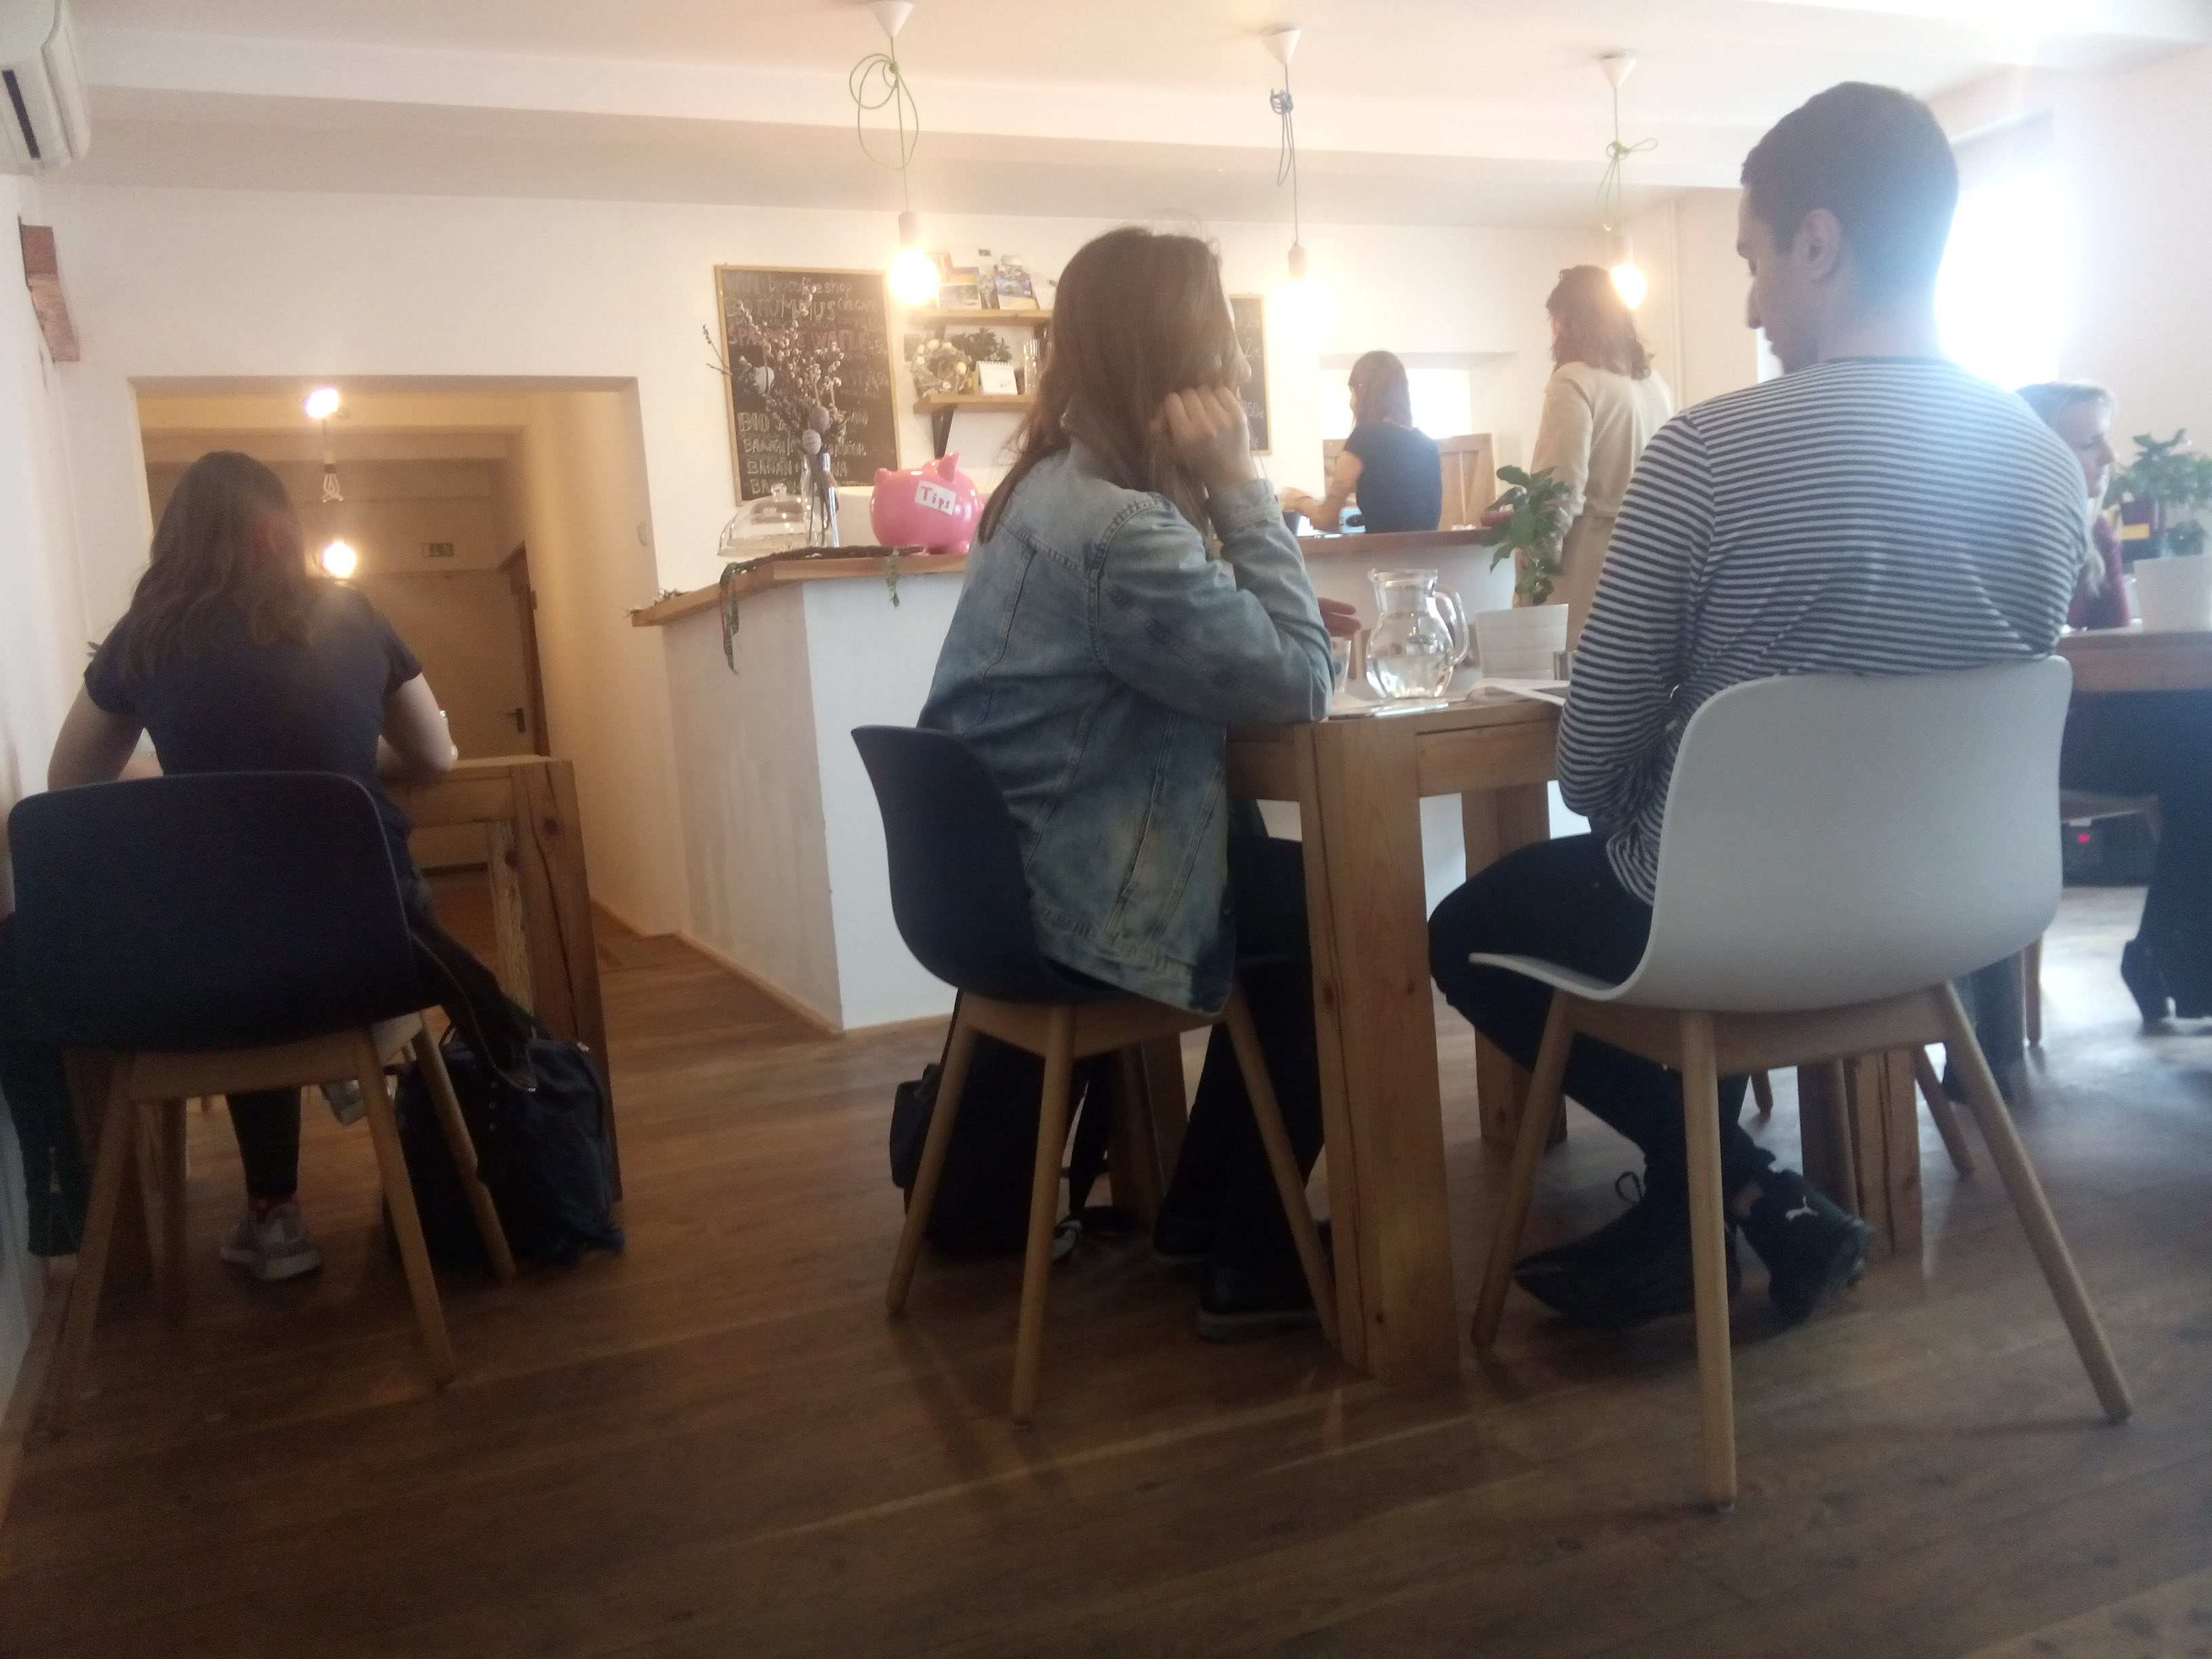 Inside a cafe with aw ooden floor, white seats, and people chatting at a table